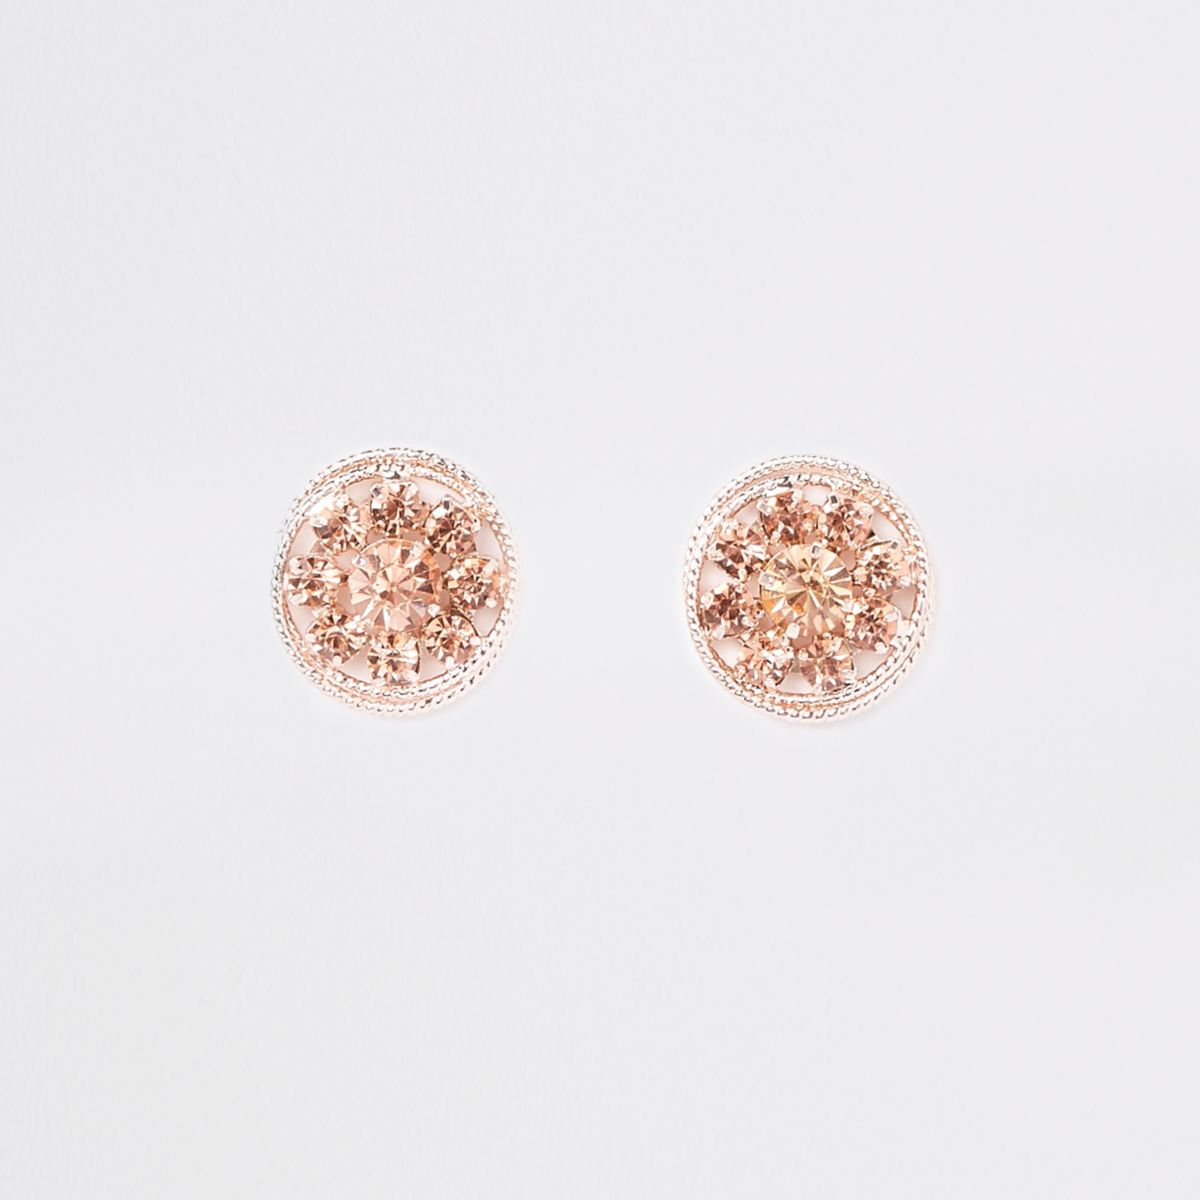 Rose gold tone twisted rope stud earrings